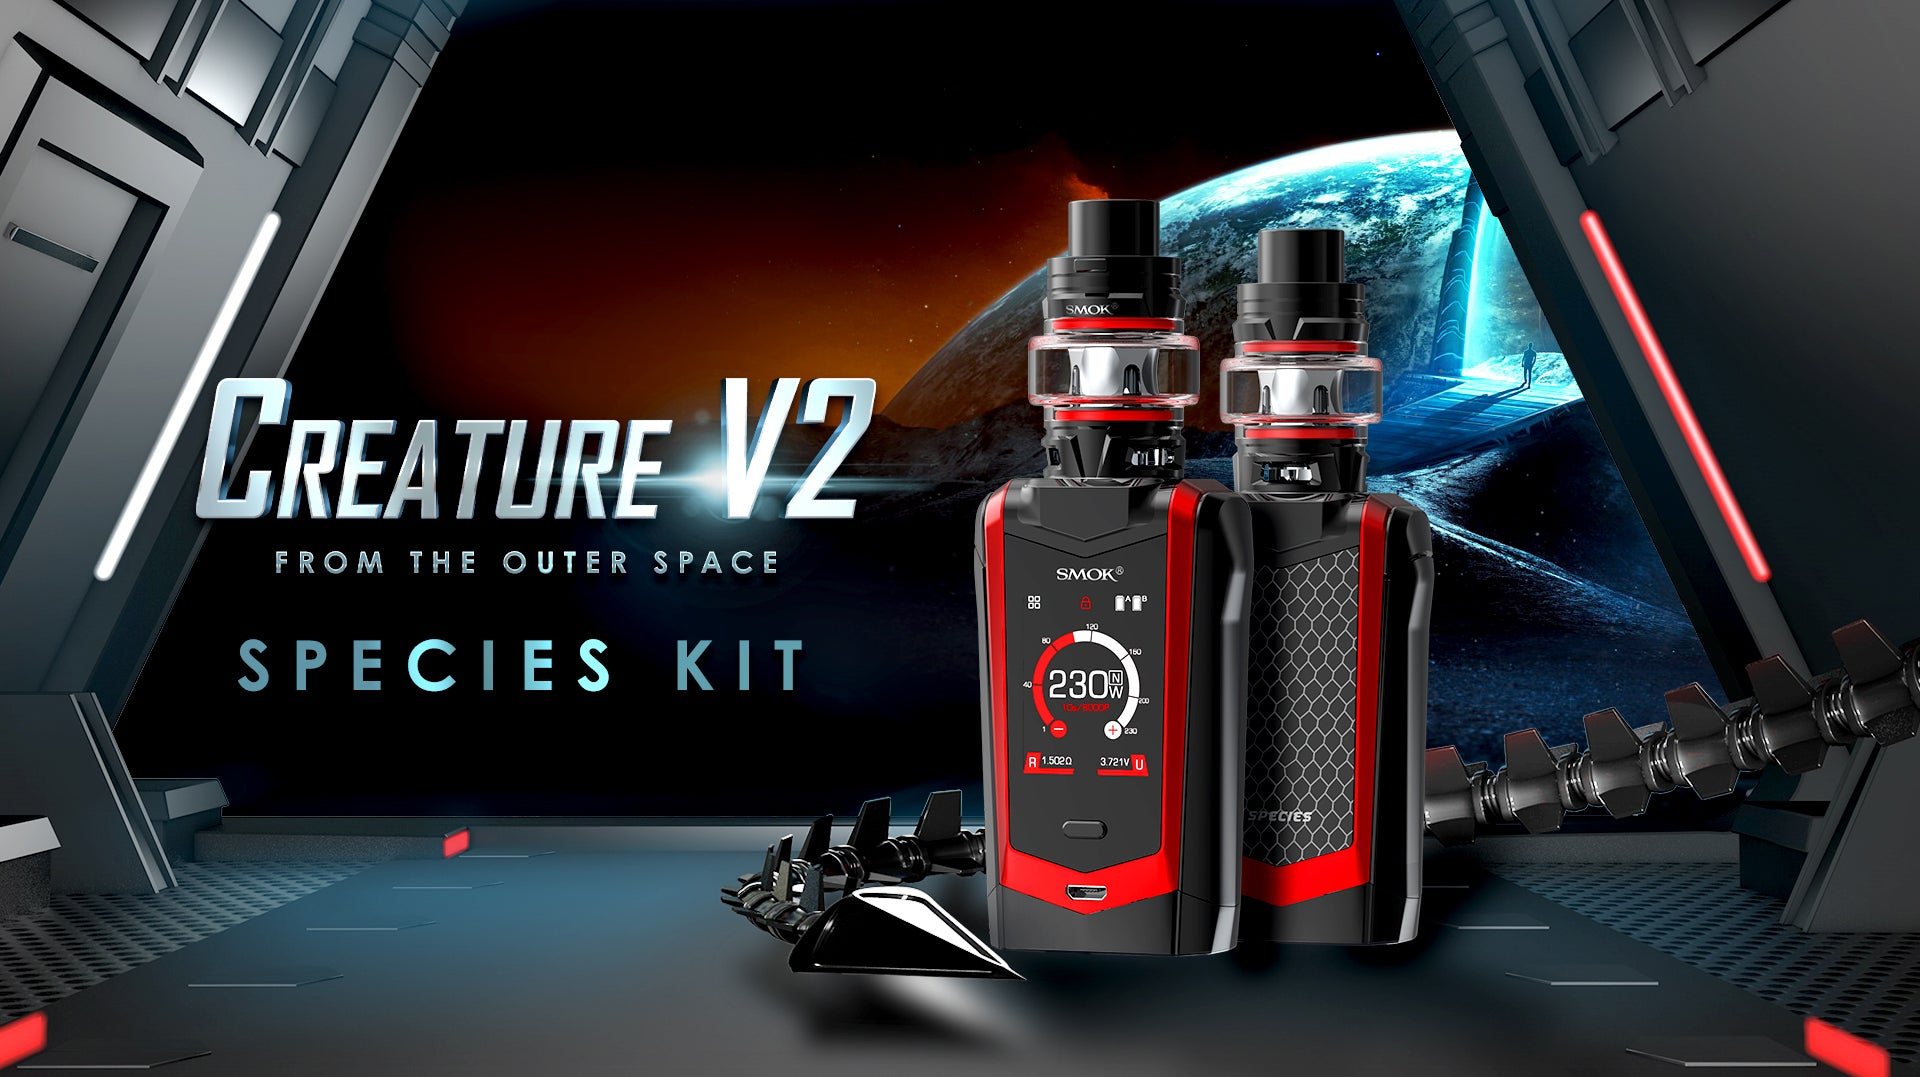 Smok Species Kit V2